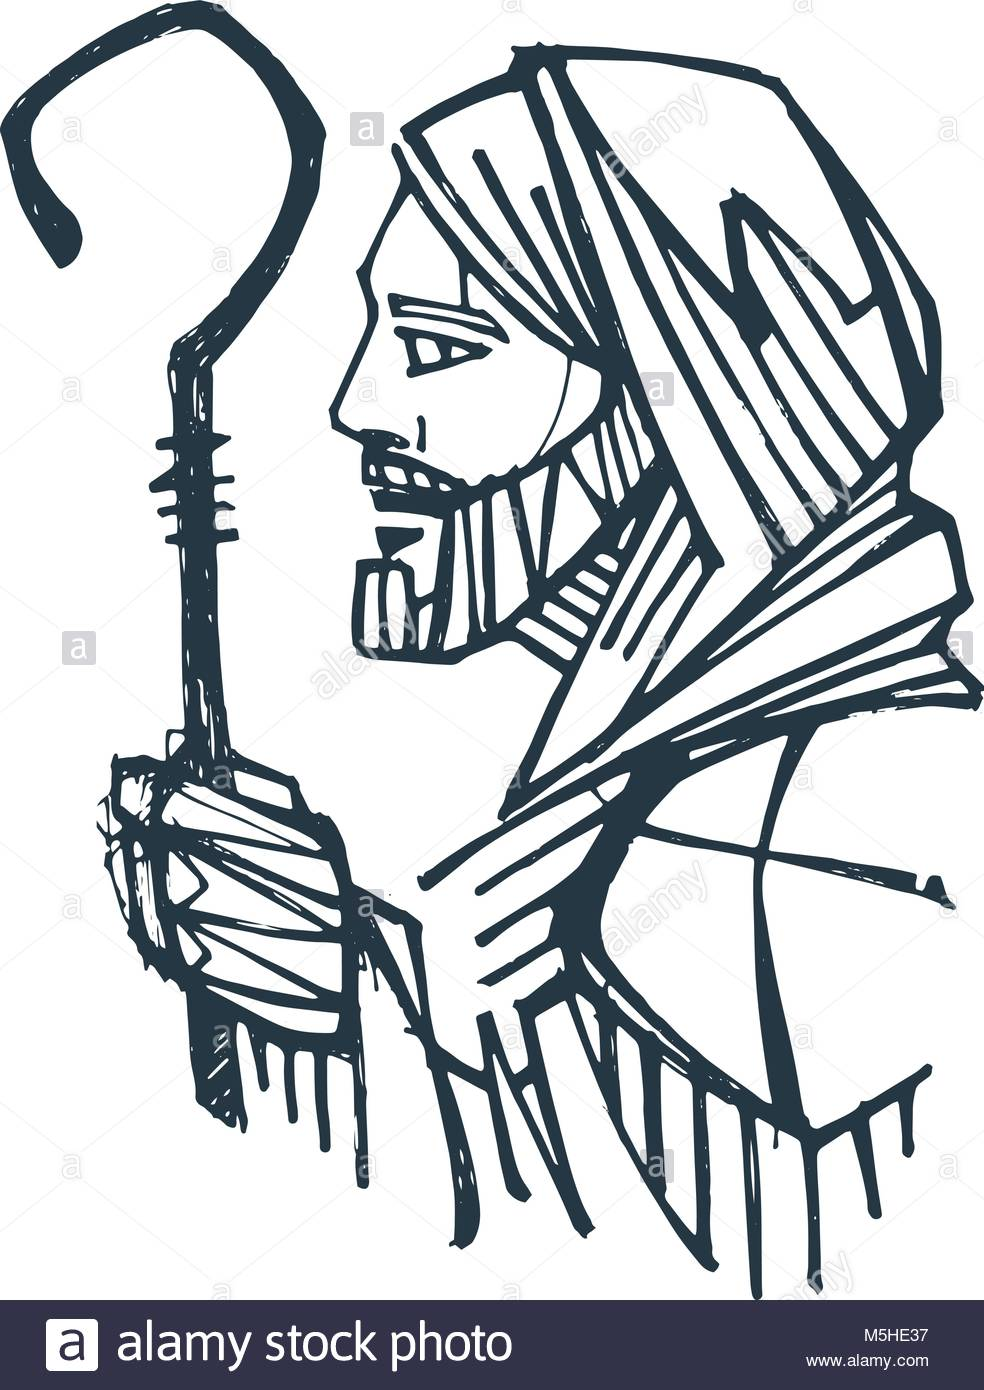 984x1390 Hand Drawn Ink Illustration Or Drawing Of Jesus Christ Good